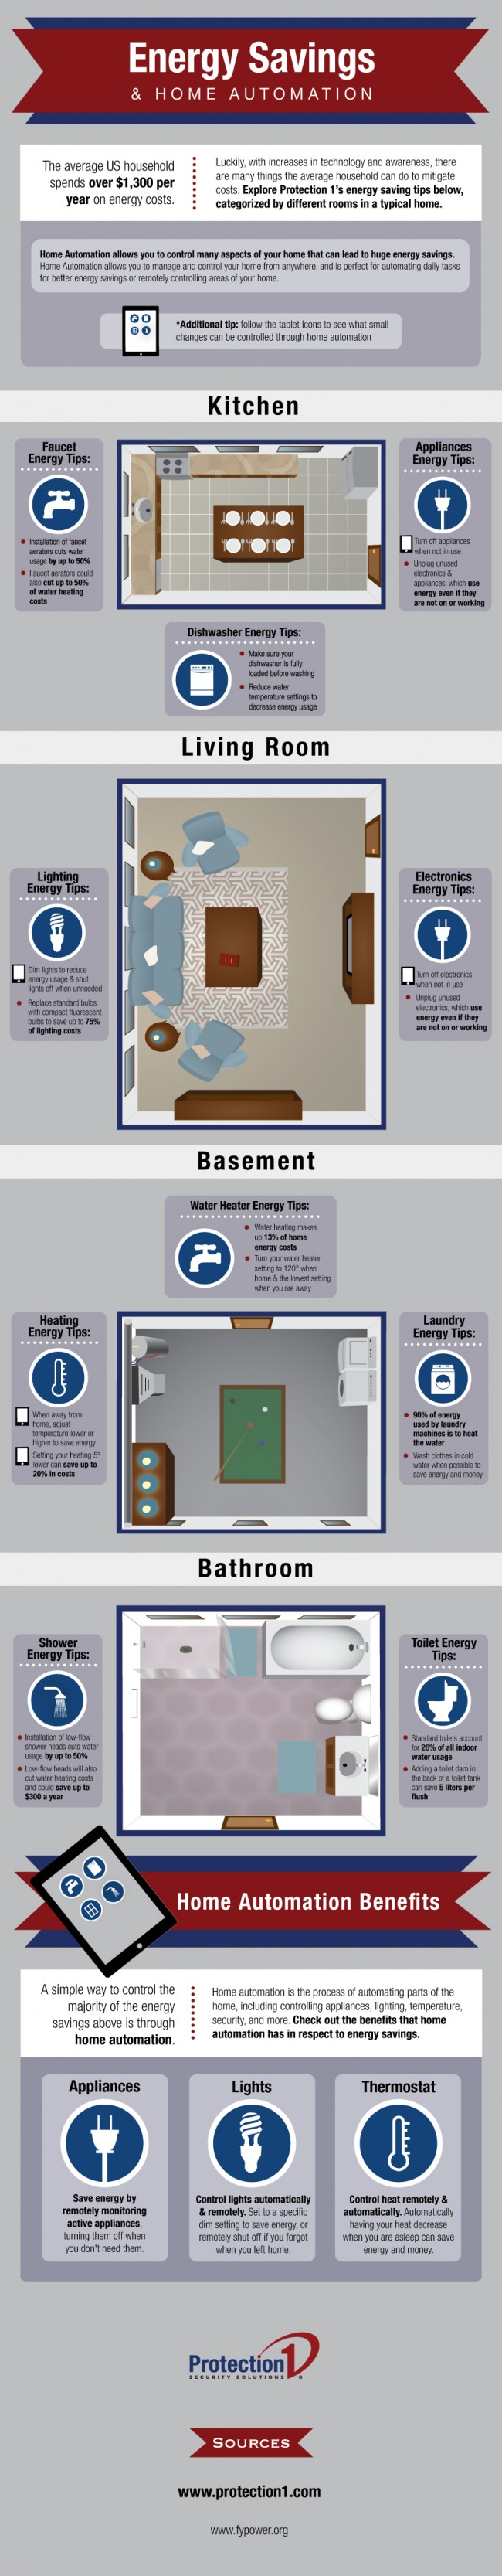 Home automation energy savings tips design you trust design blog and community awesome - Home automation energy saving ...